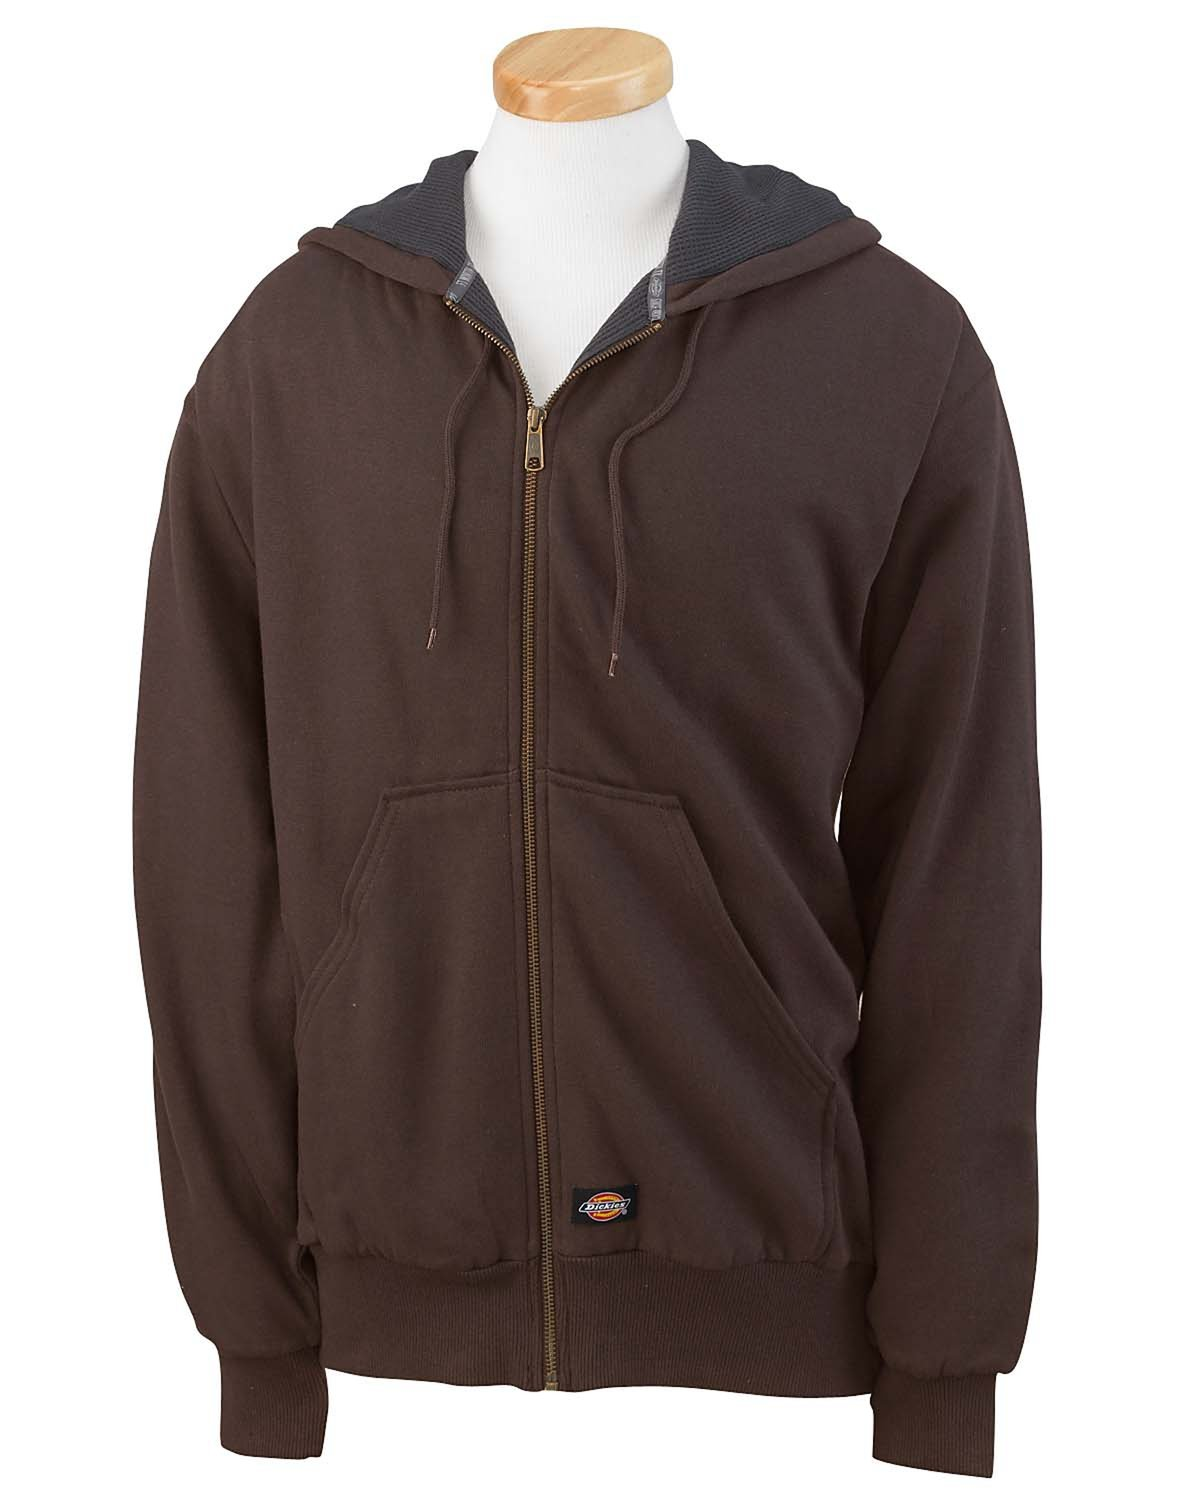 Dickies Men's 470 Gram Thermal-Lined Fleece Jacket Hooded Sweatshirt DARK BROWN